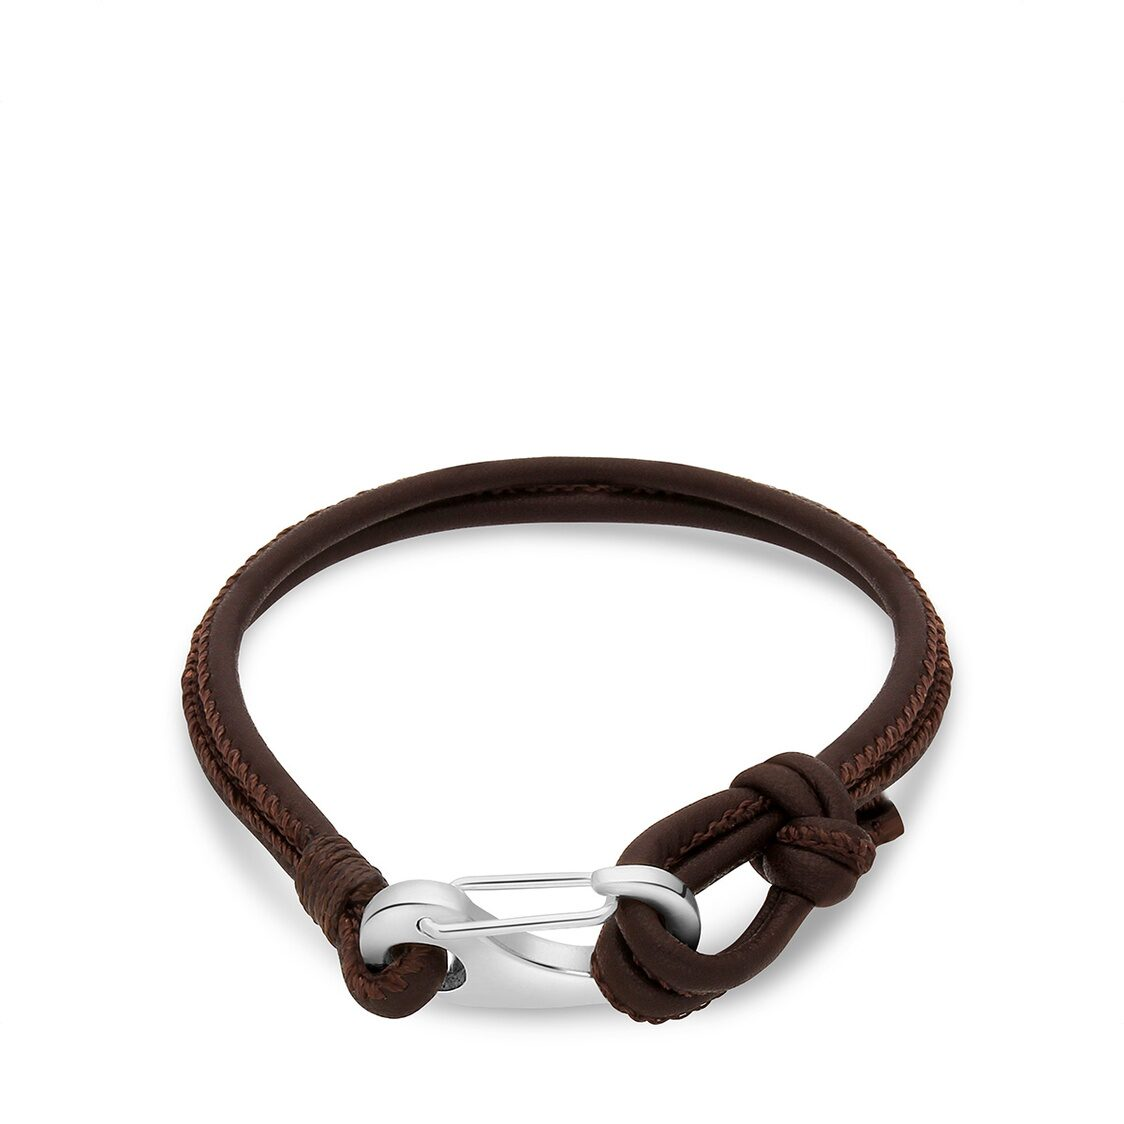 Ron Bracelet - Brown Leather